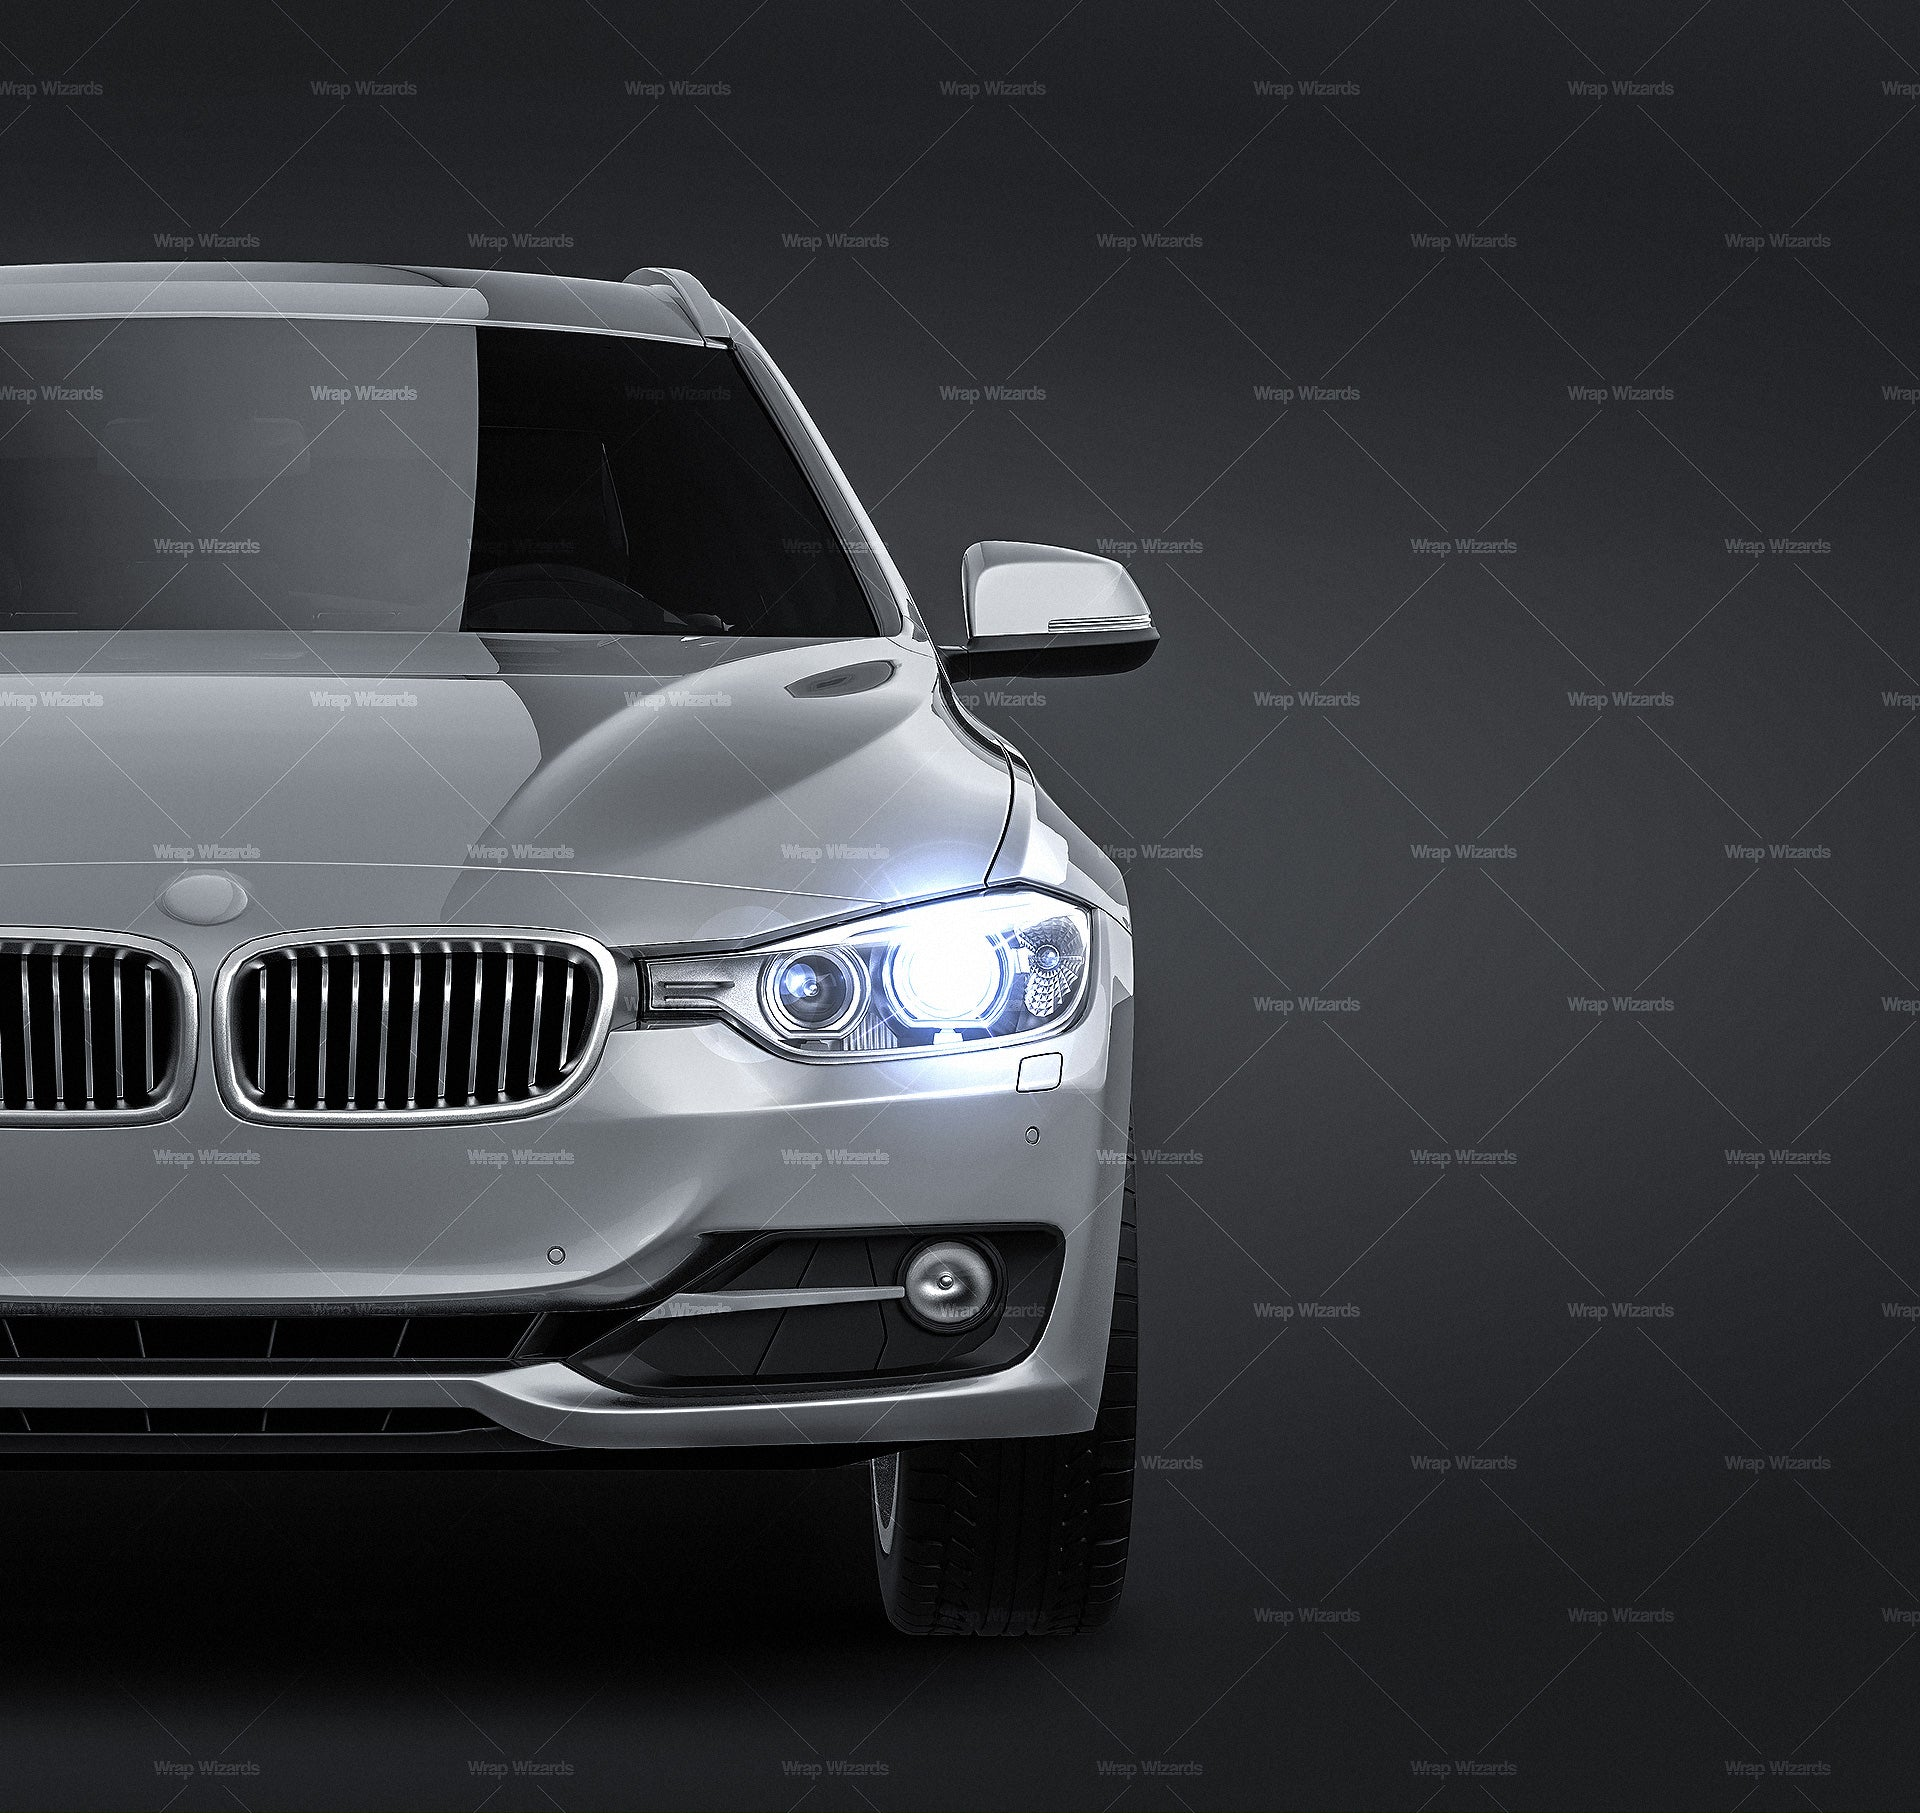 BMW 3 series F31 Touring 2013 all sides Car Mockup Template.psd